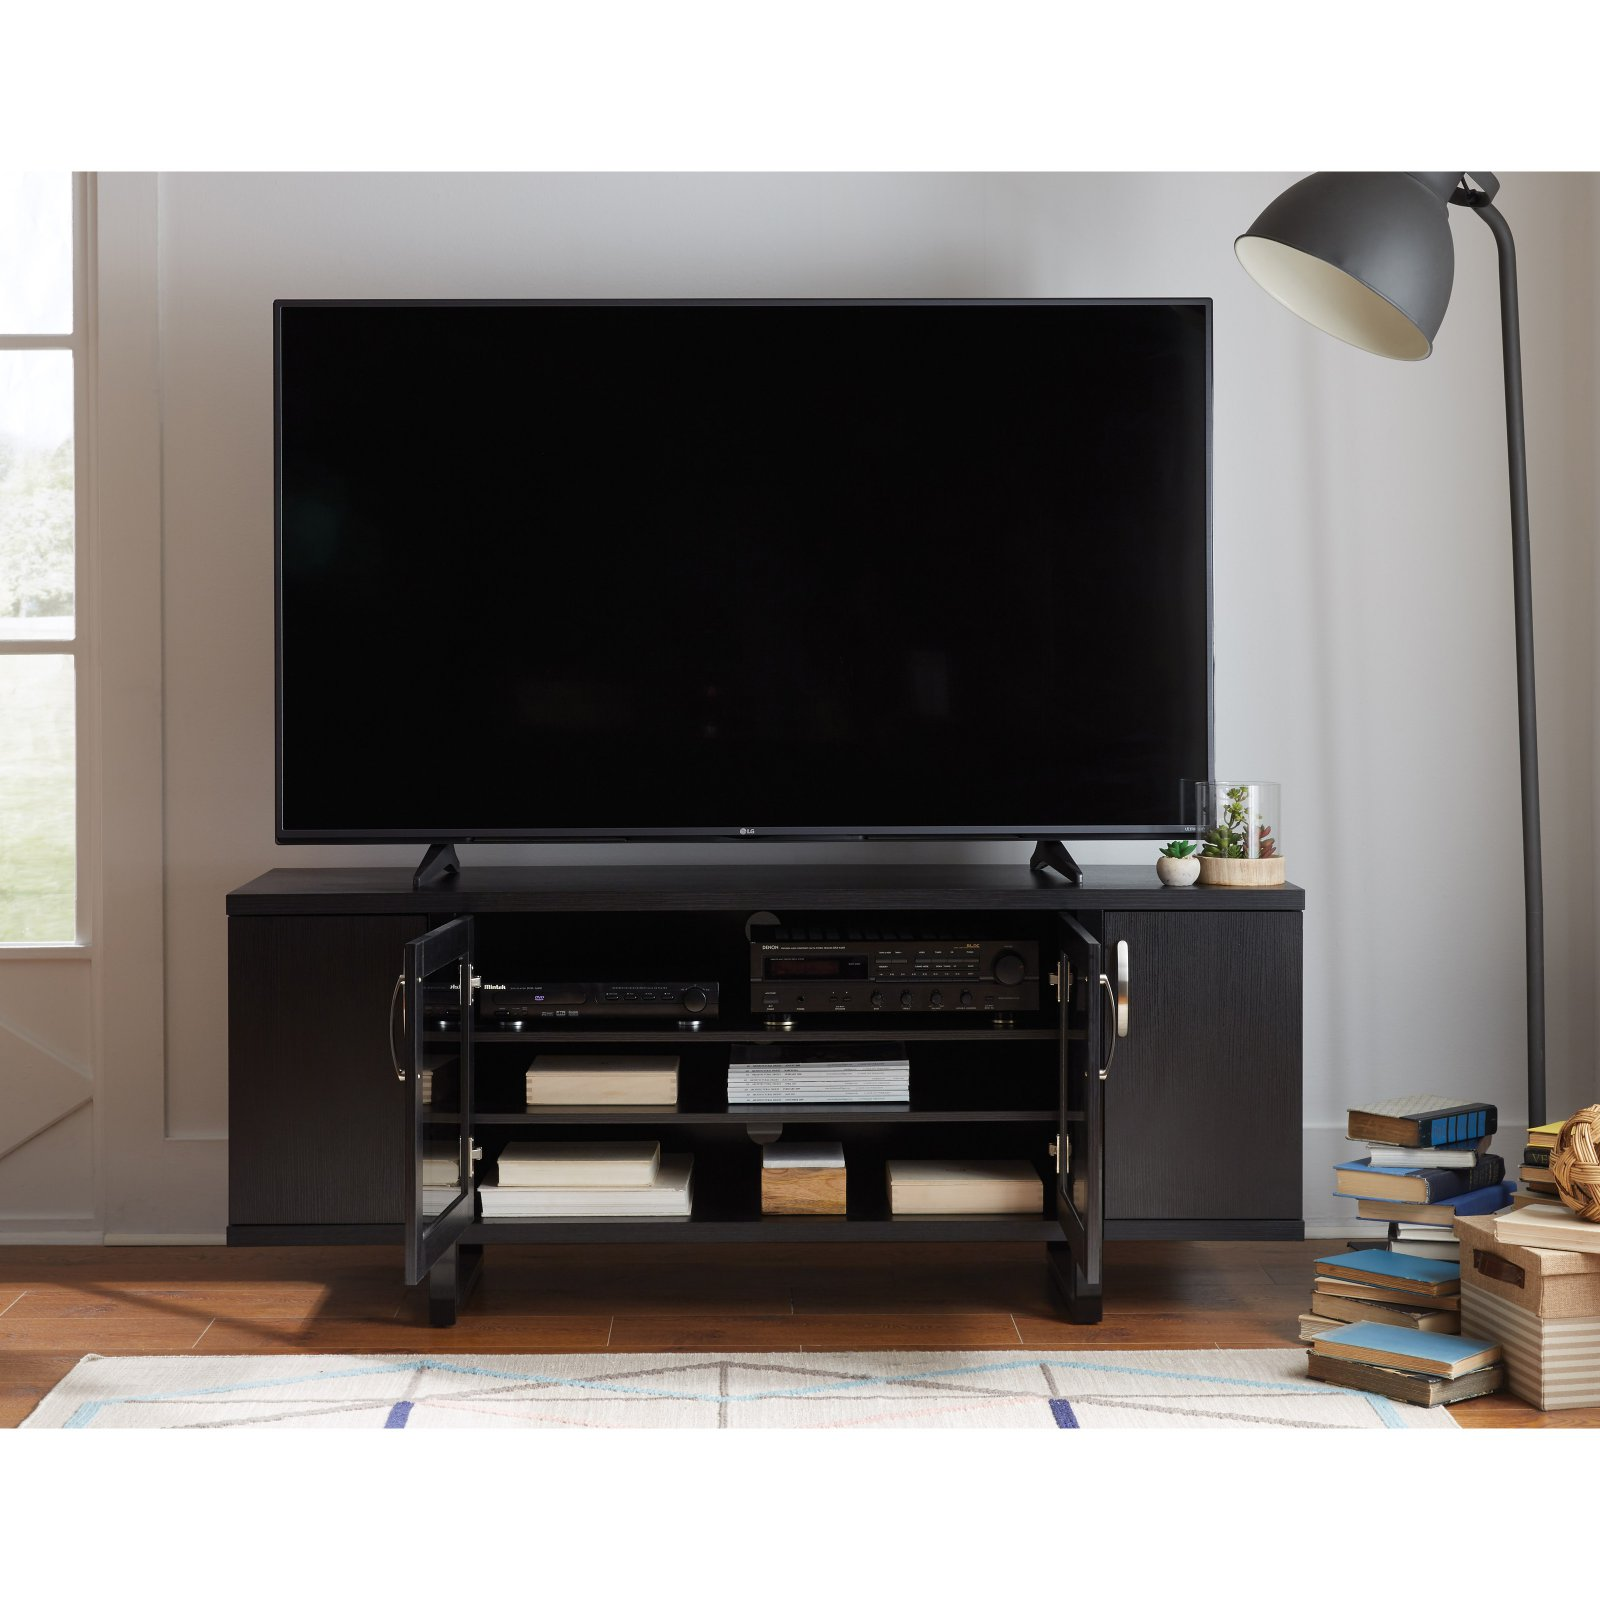 Sandberg Furniture Martin Svensson Home Hudson 63 in. TV Stand